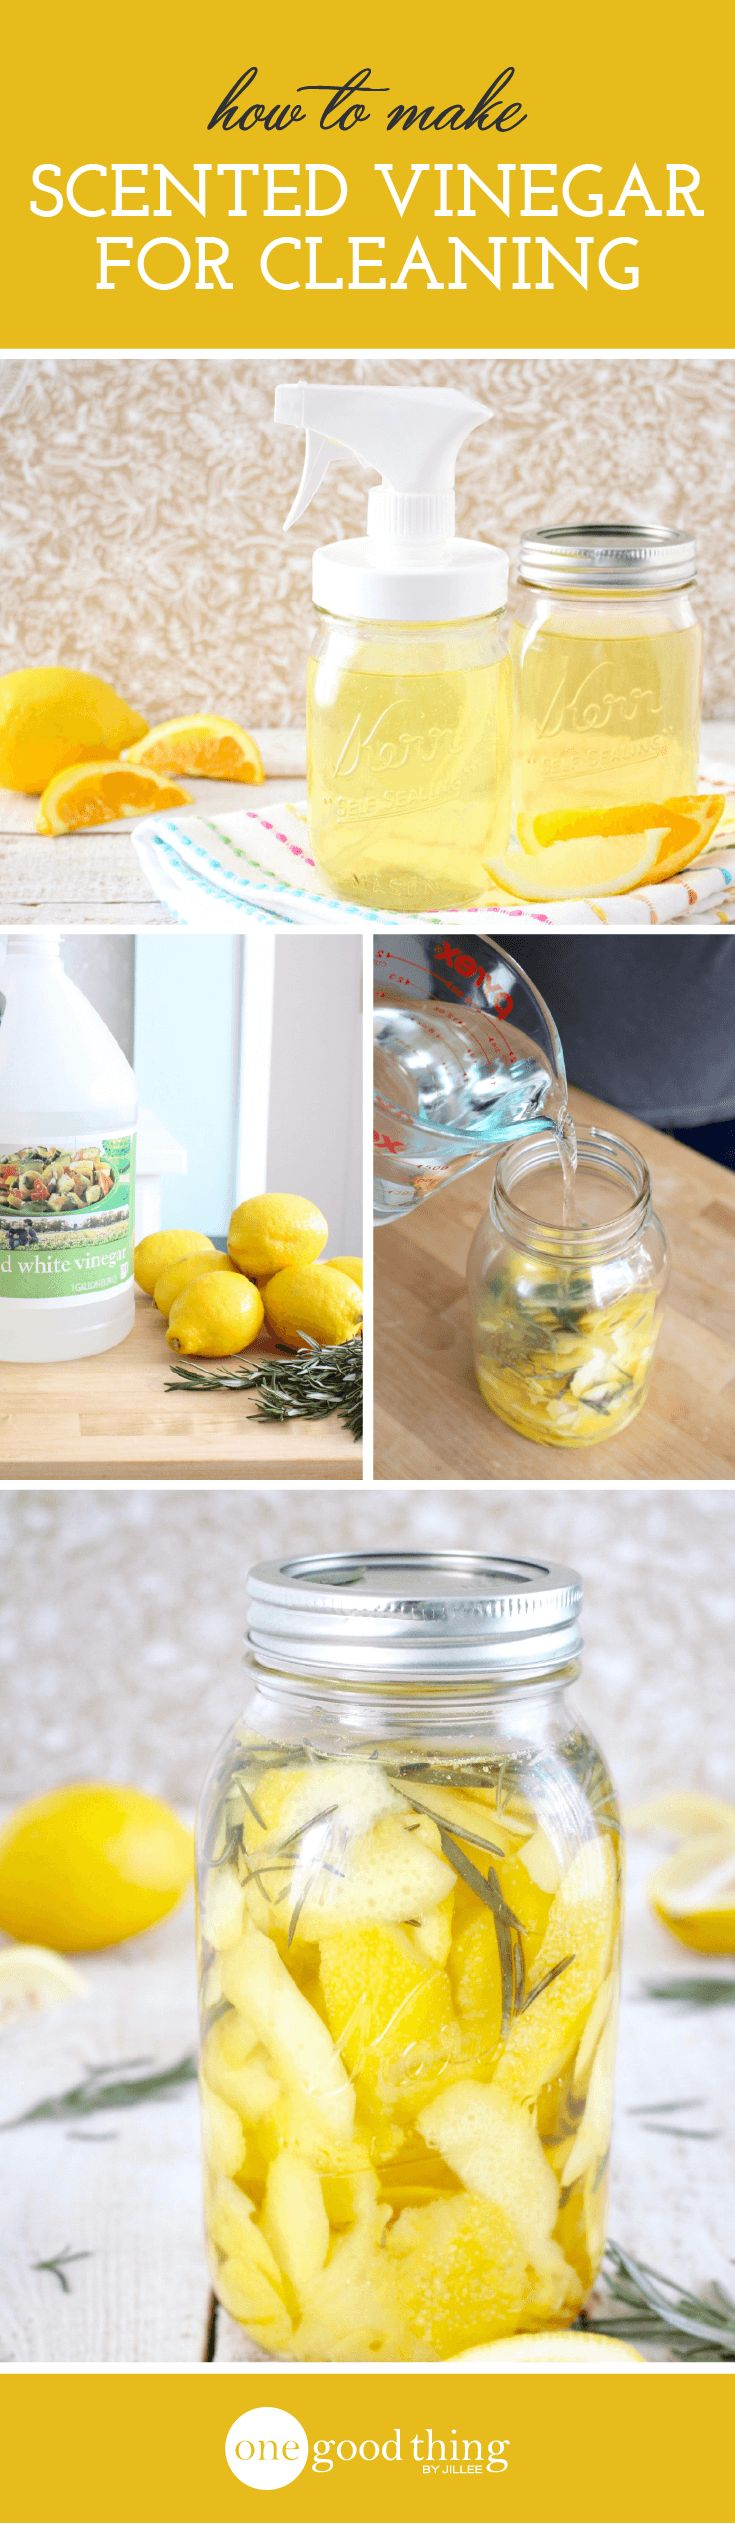 How To Make Scented Cleaning Vinegar - One Good Thing by Jillee